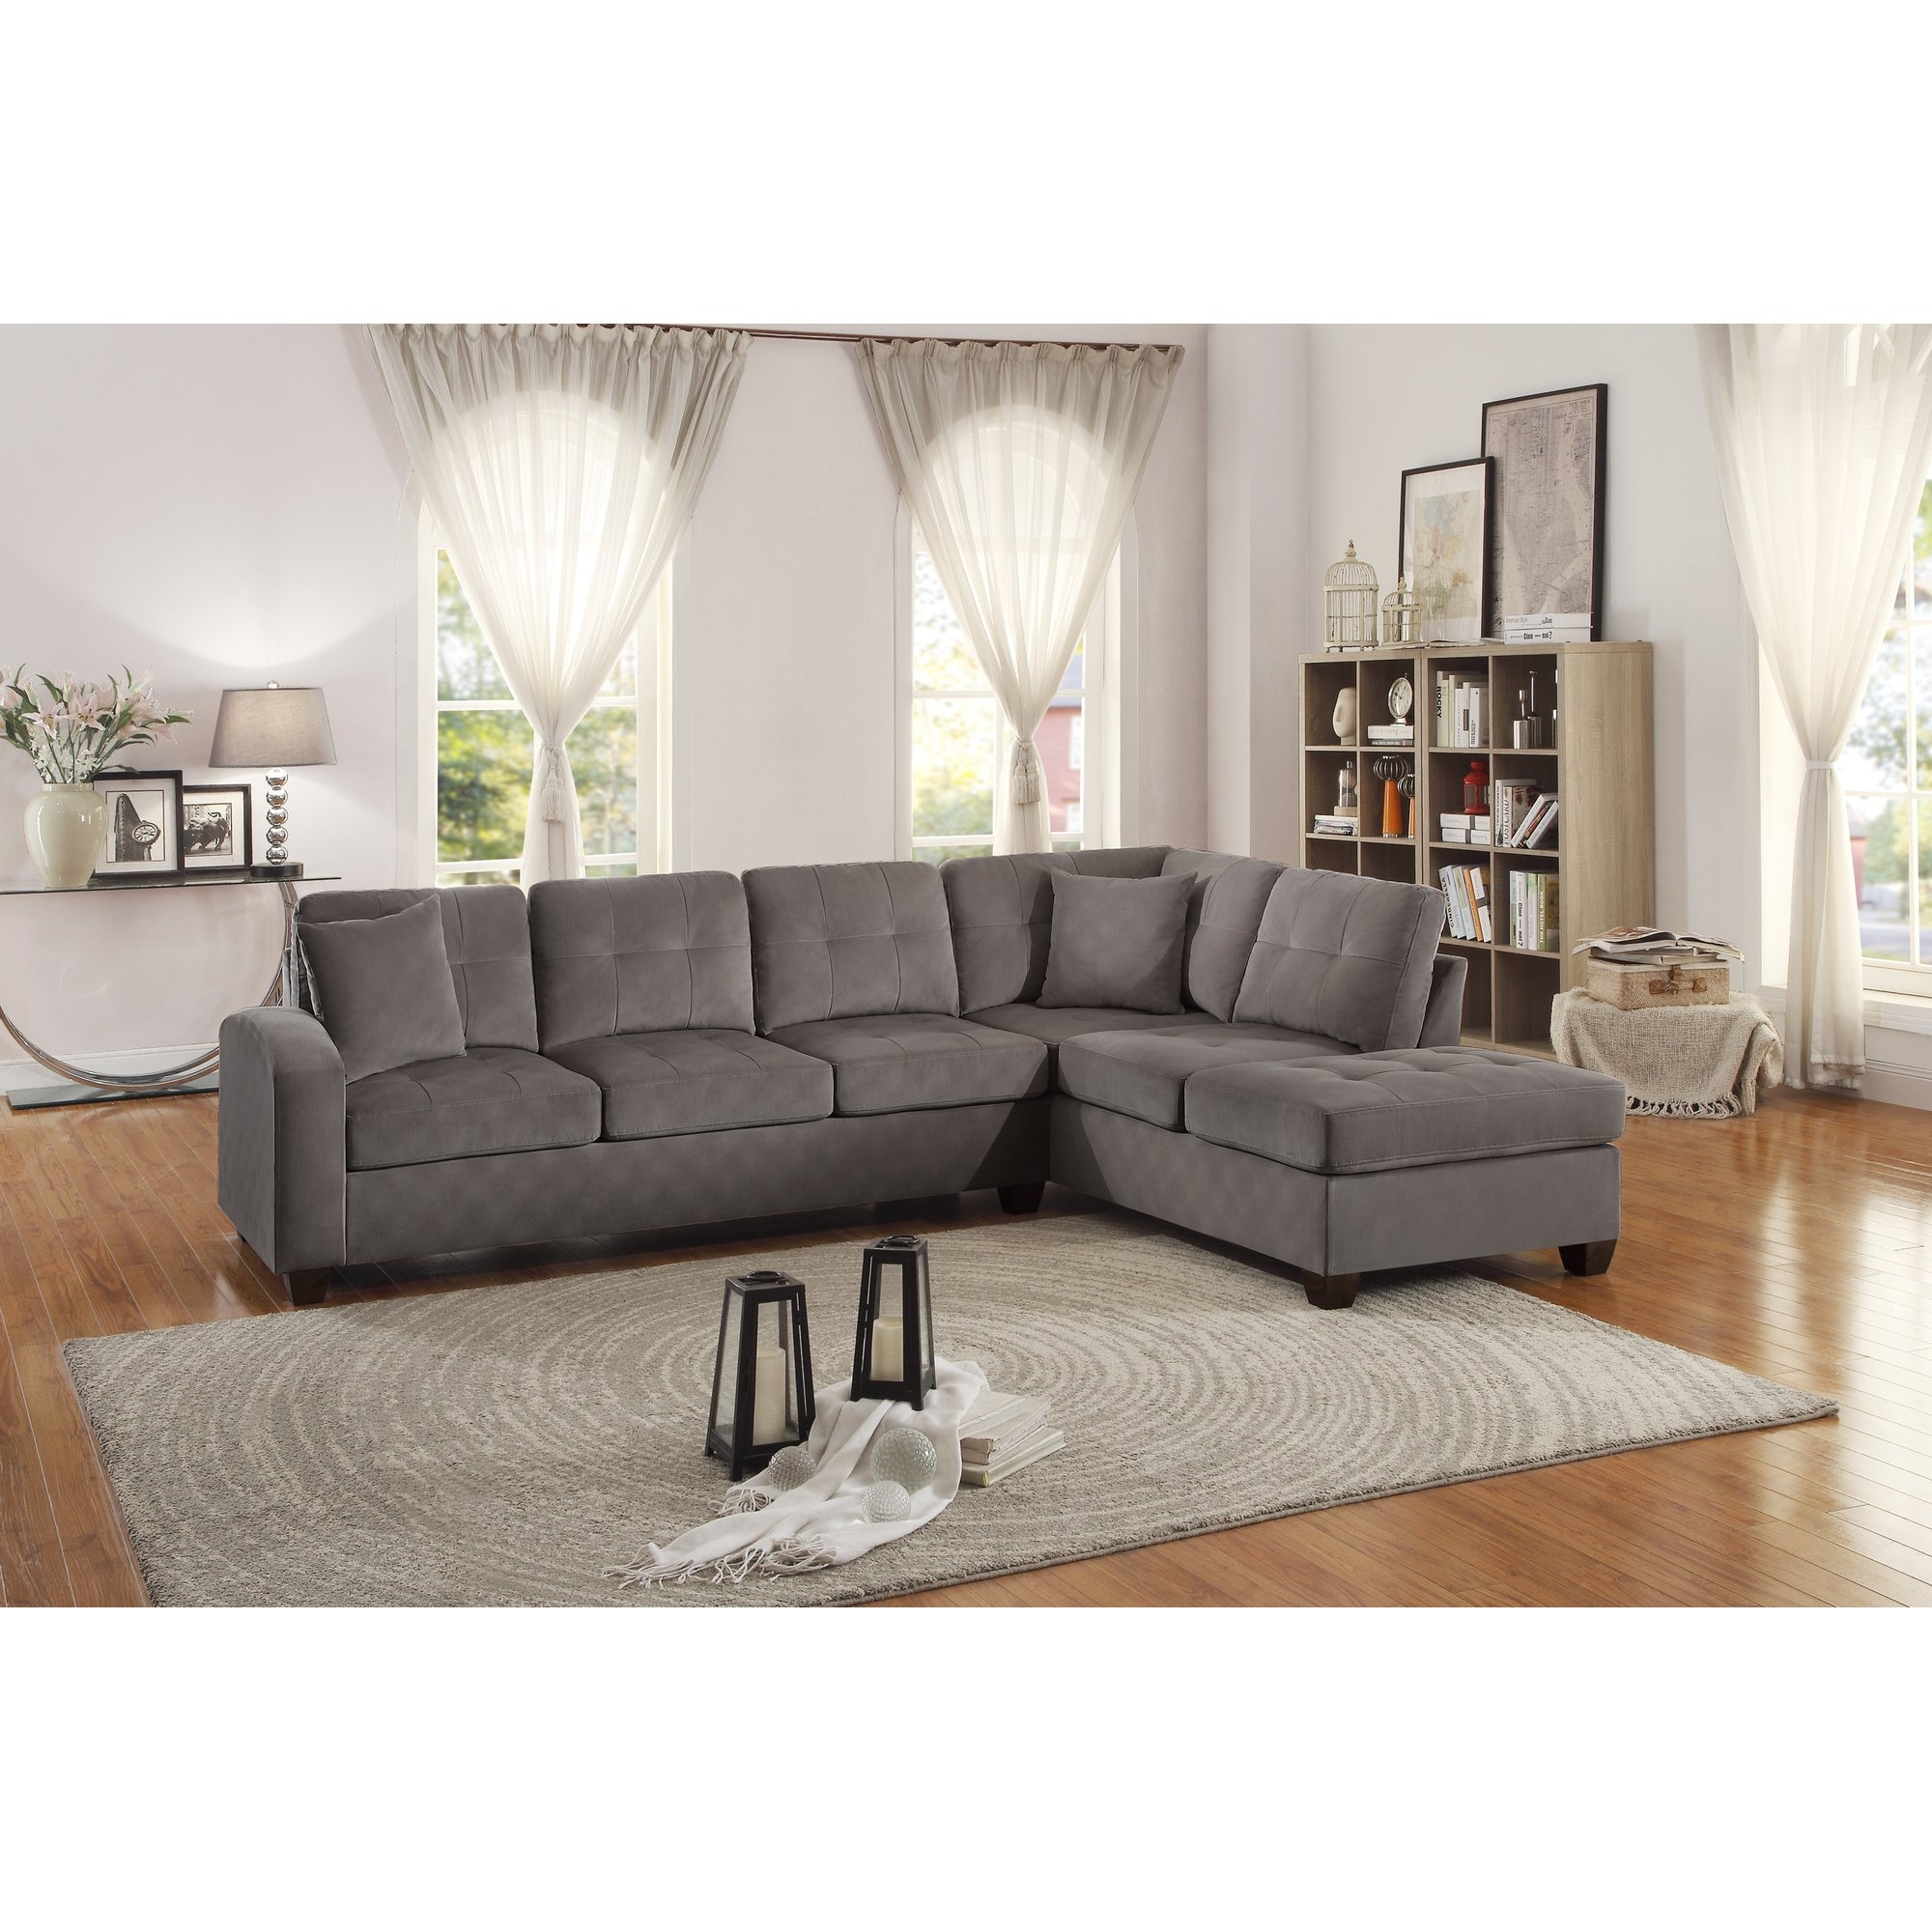 Sectional Sofas Youll Love Wayfair Regarding Cozy Sectional Sofas (Image 14 of 15)